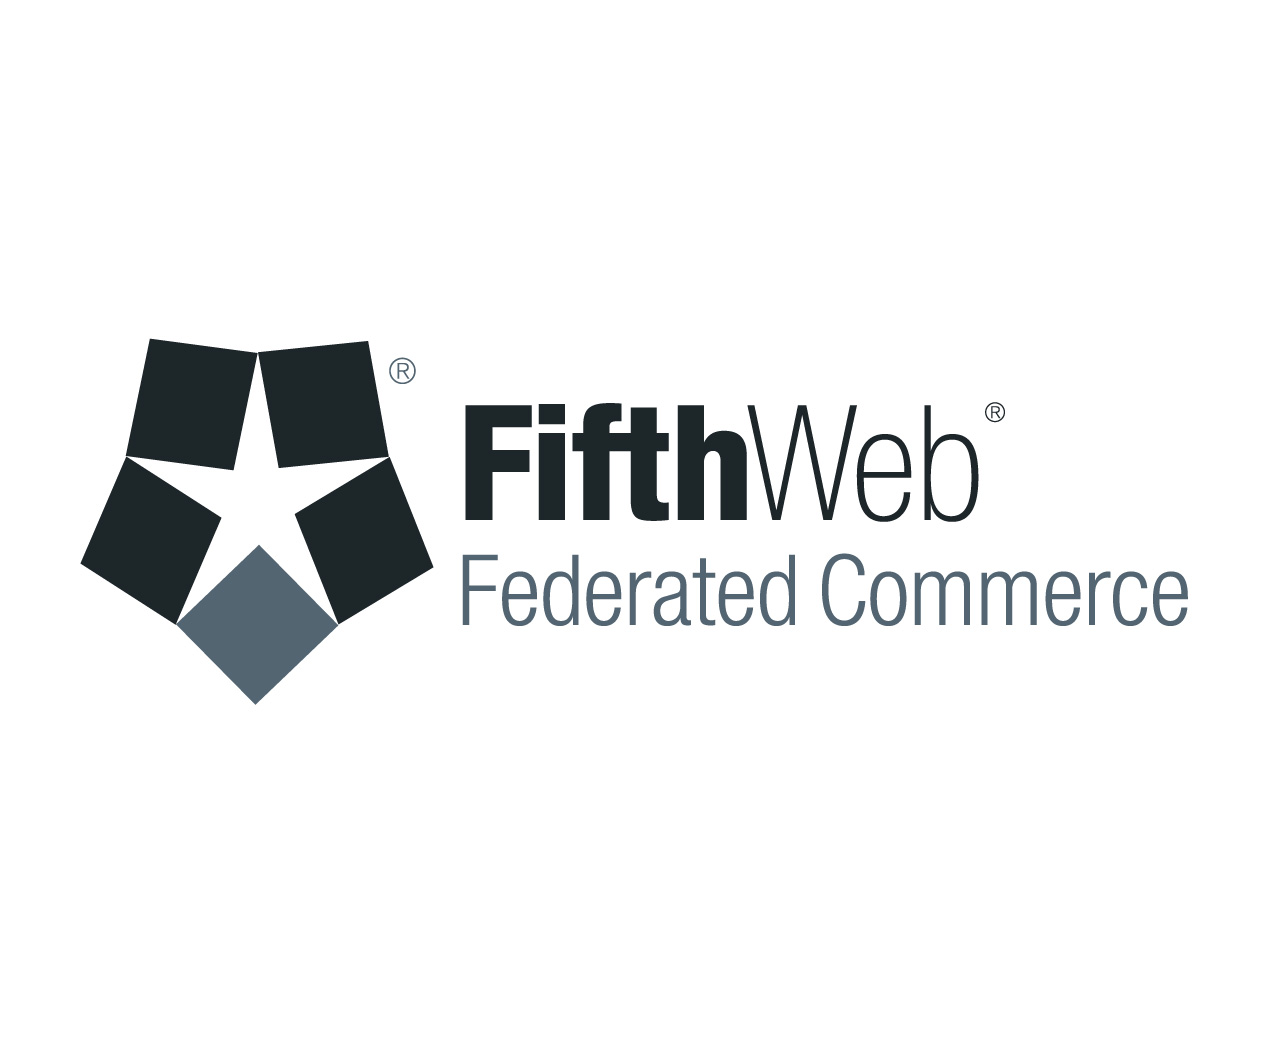 Fifth Web - Federated Commerce Logo